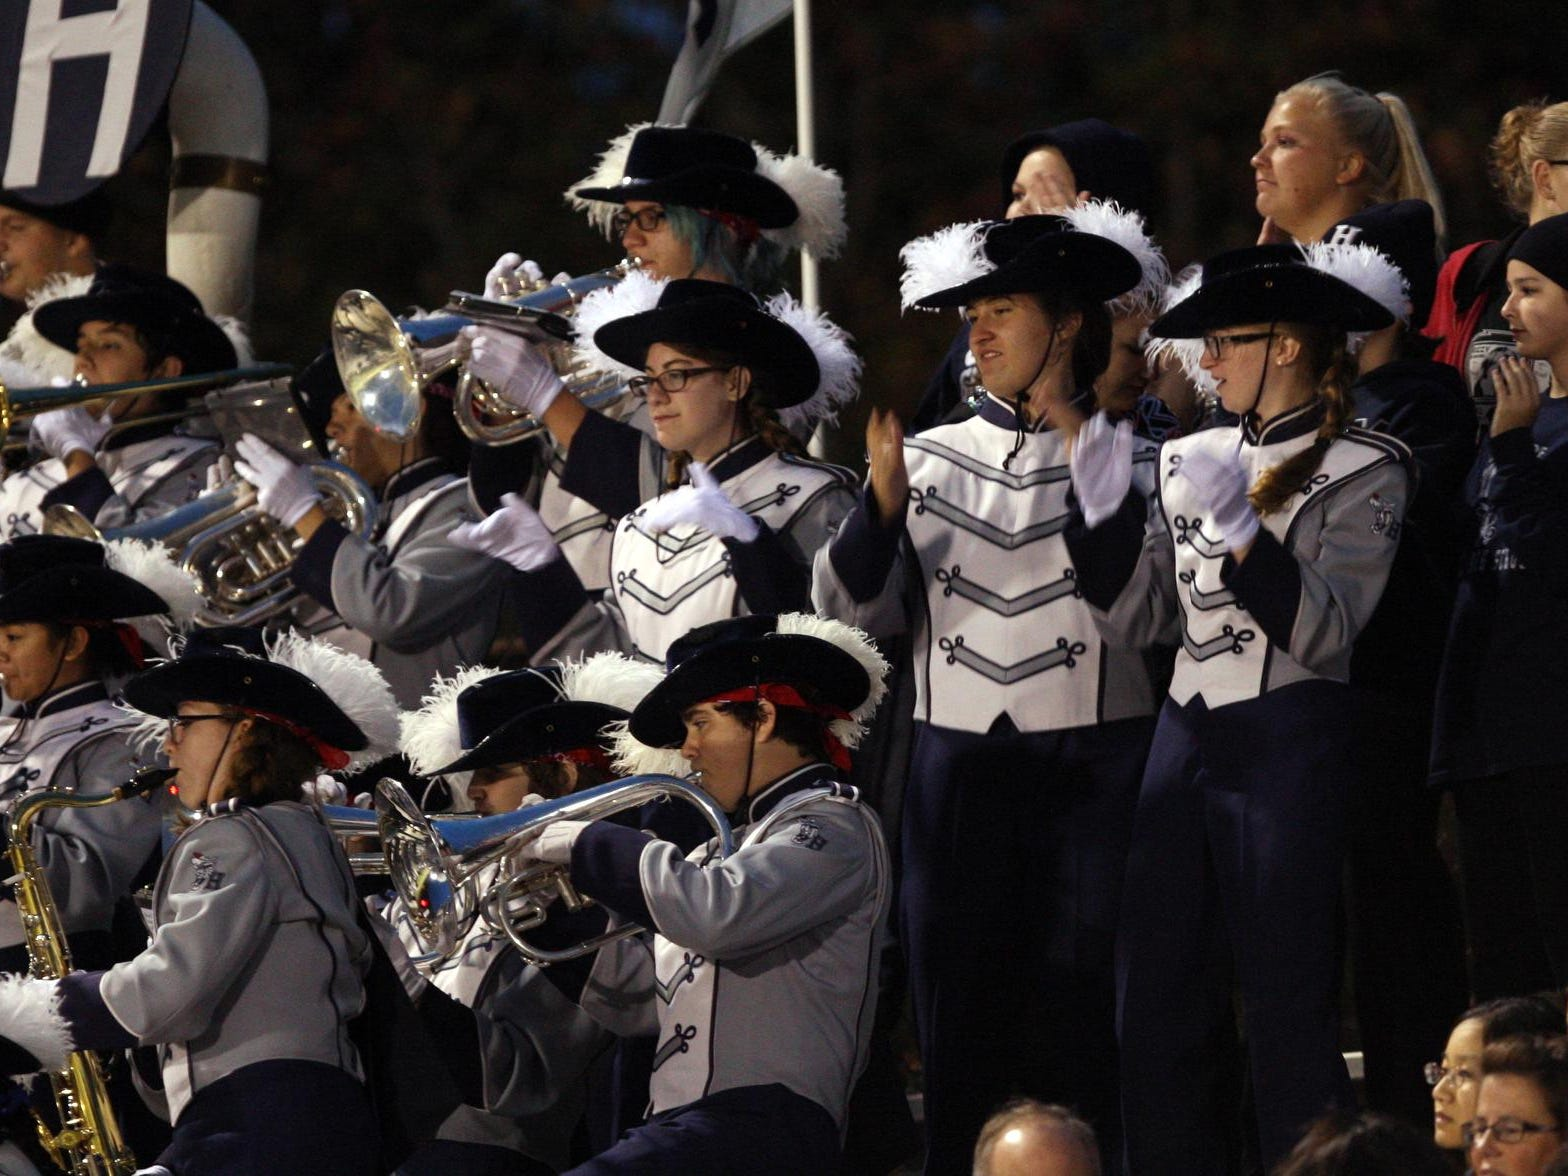 The Howell band plays as their team plays Freehold Township in a football game Friday, September 25, 2015, at Howell High School.